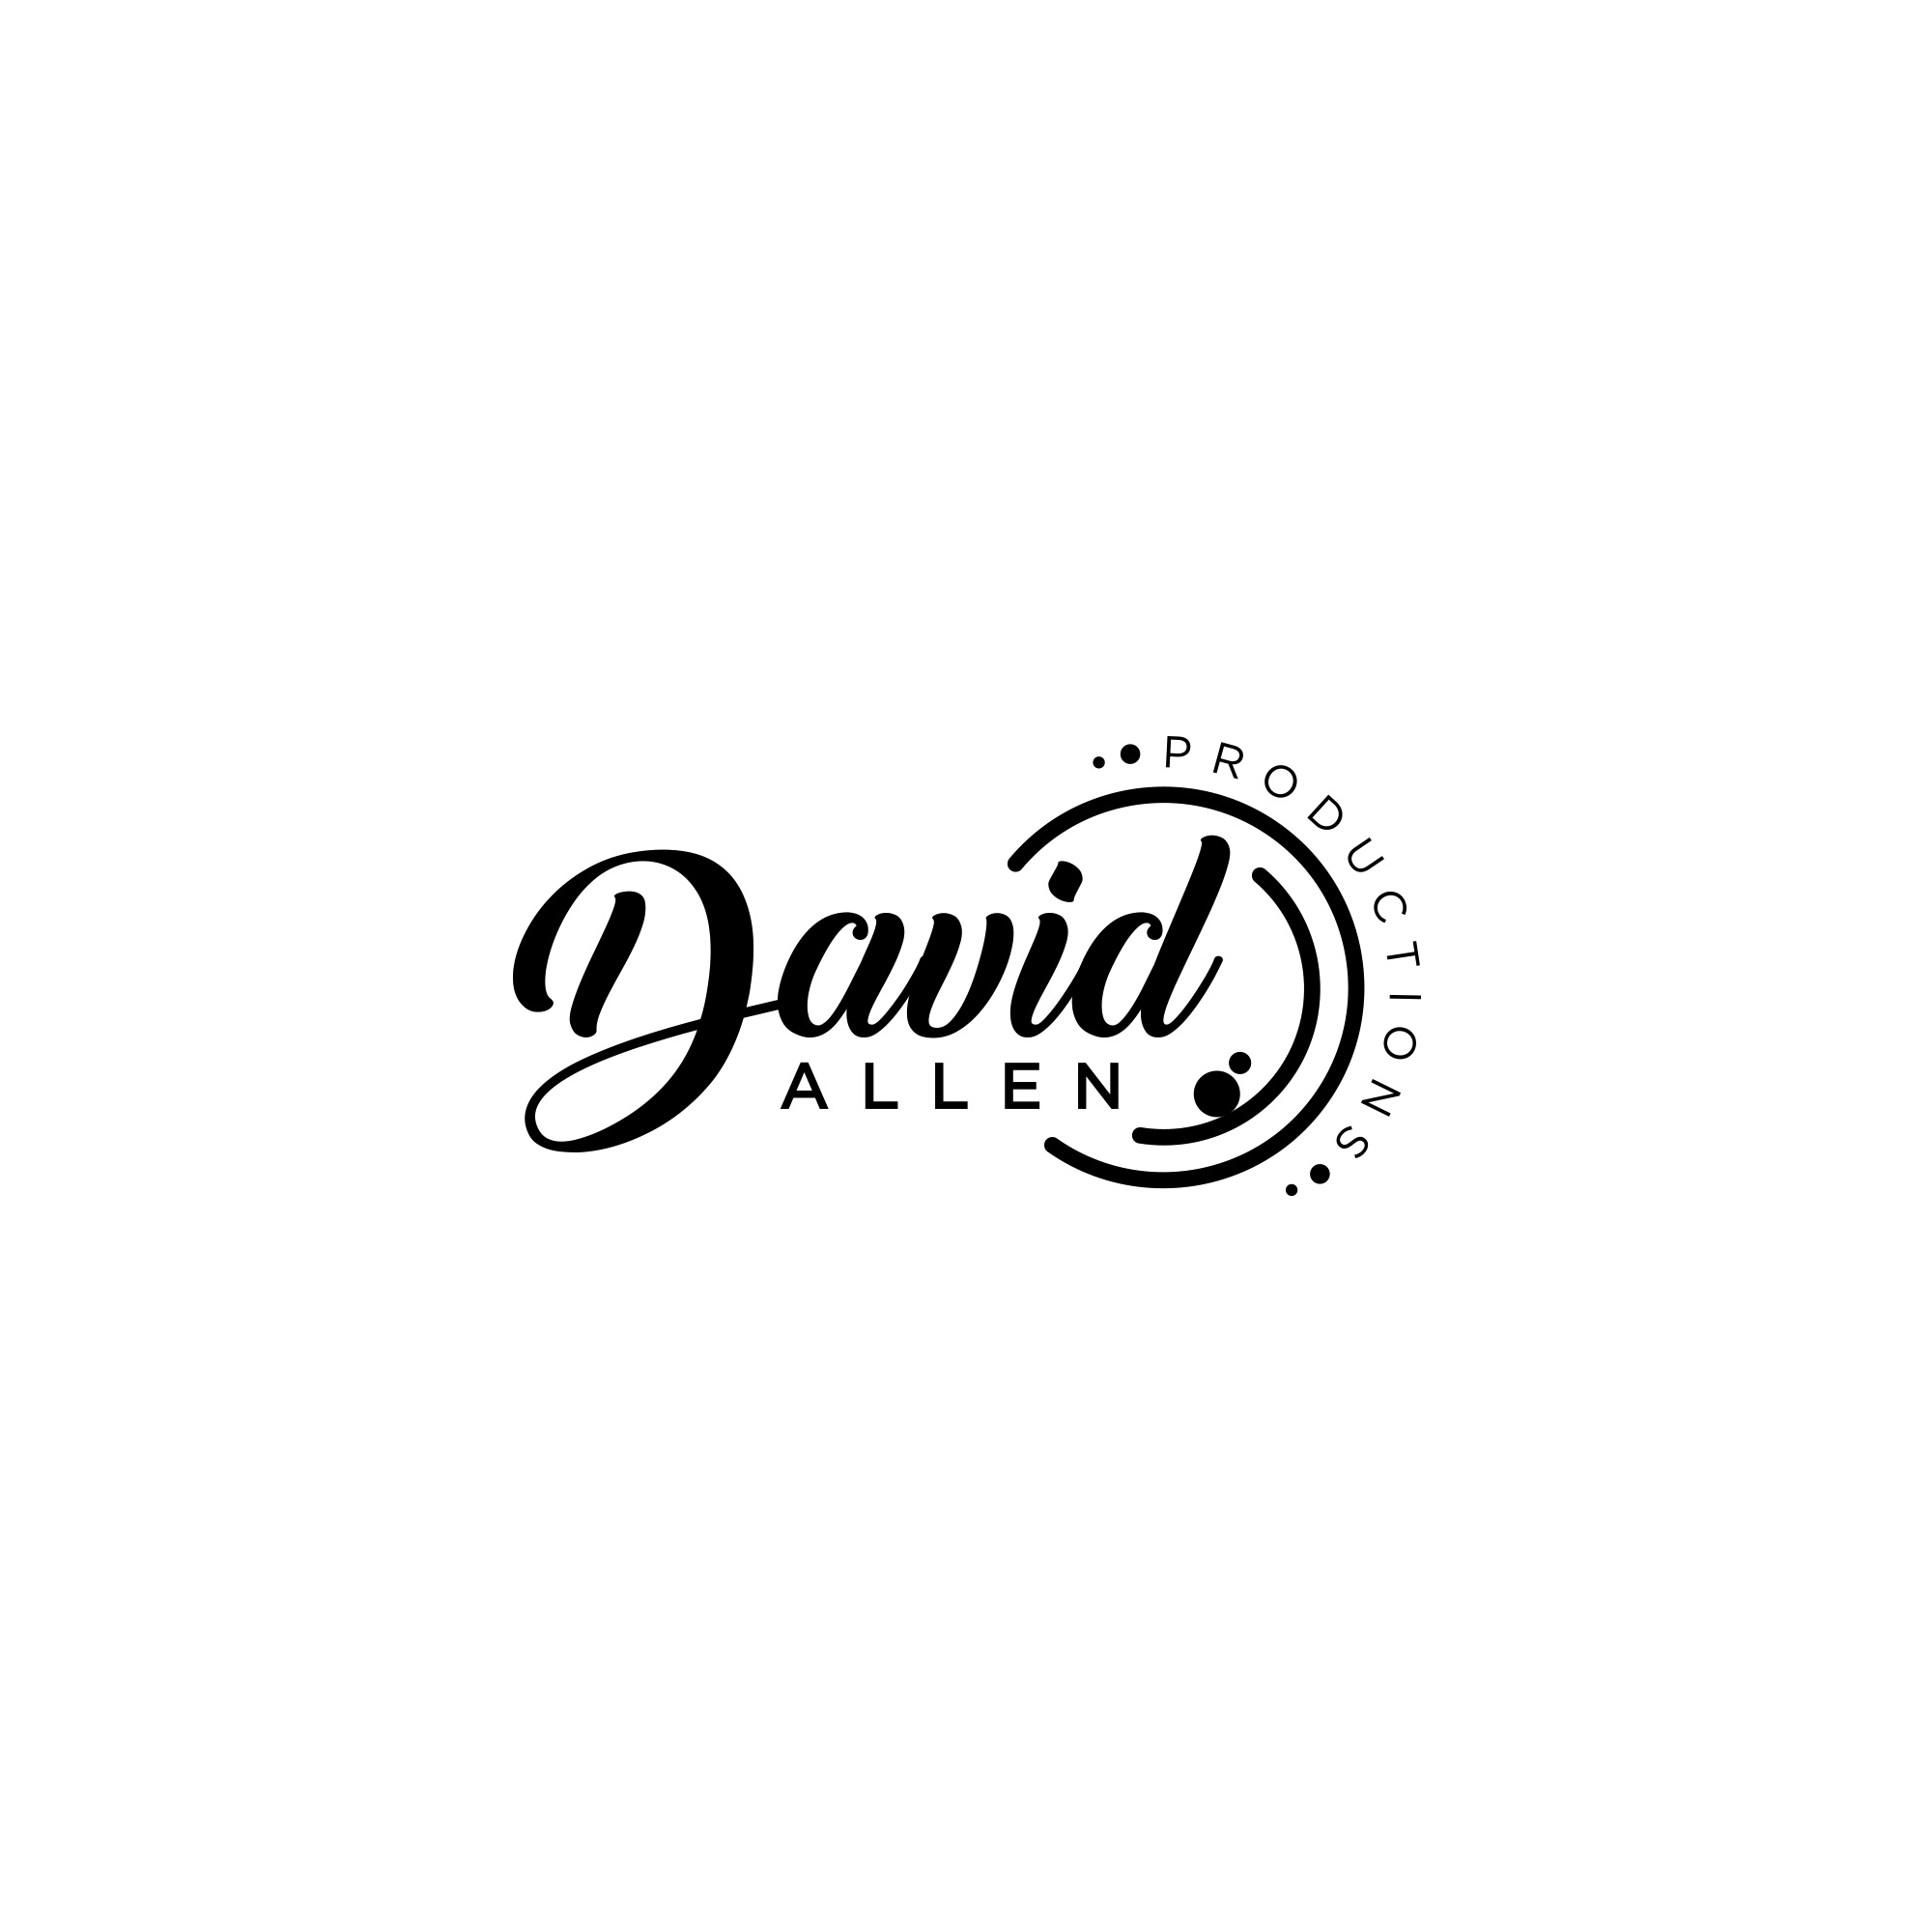 David Allen Productions logo